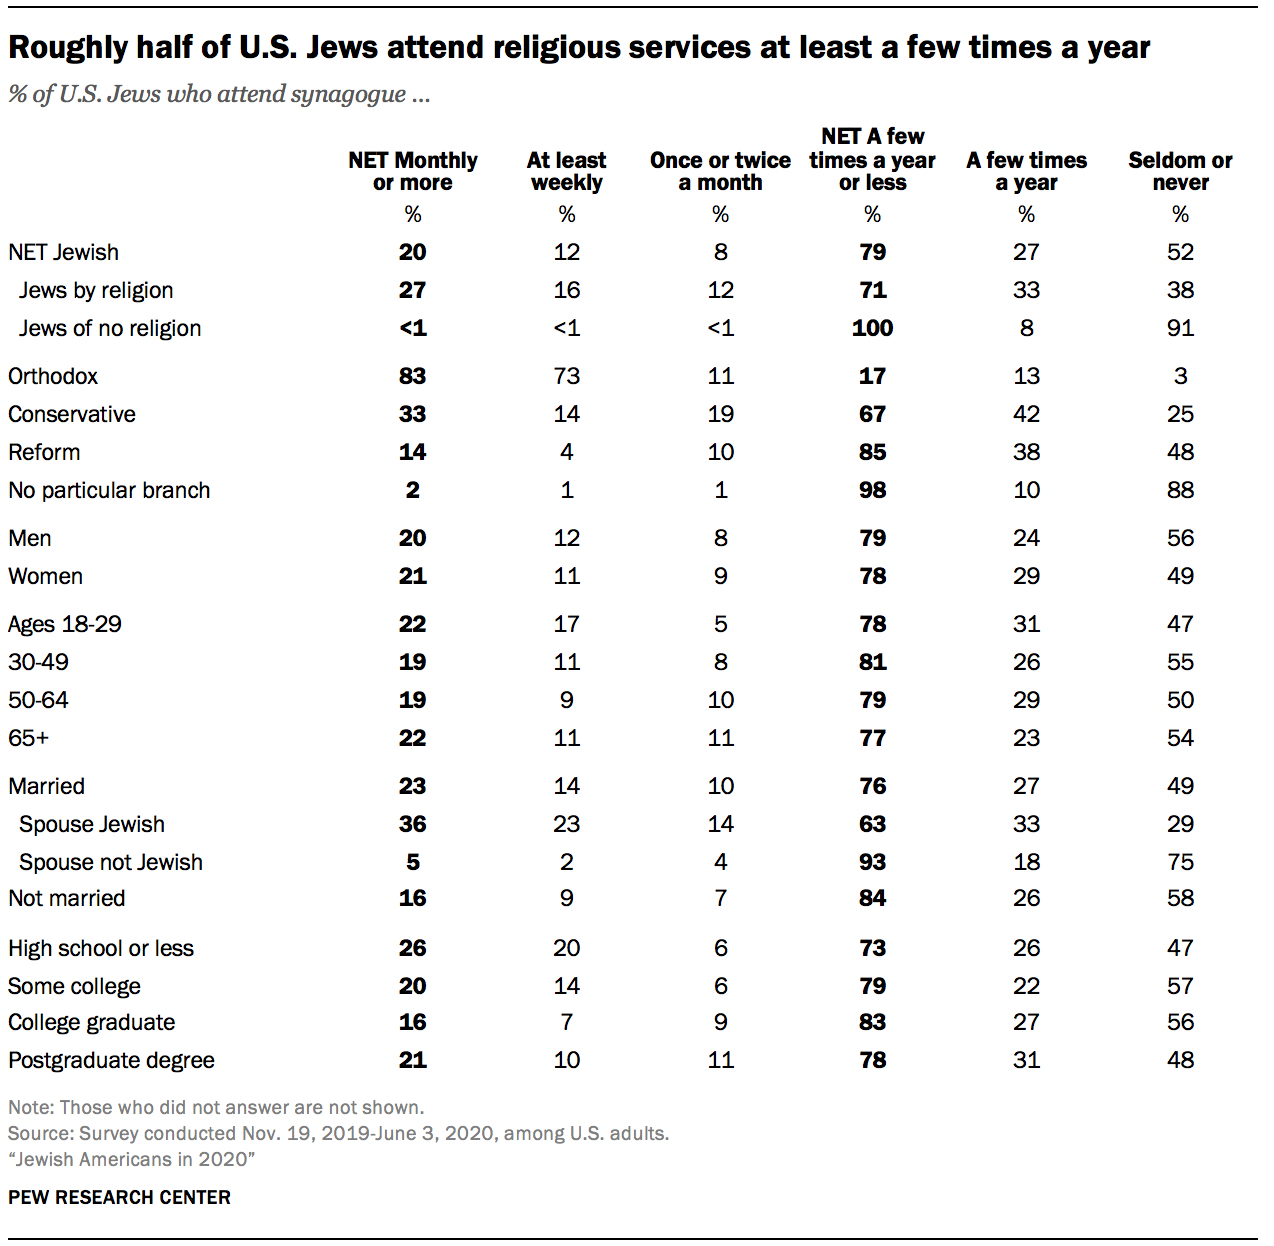 Roughly half of U.S. Jews attend religious services at least a few times a year